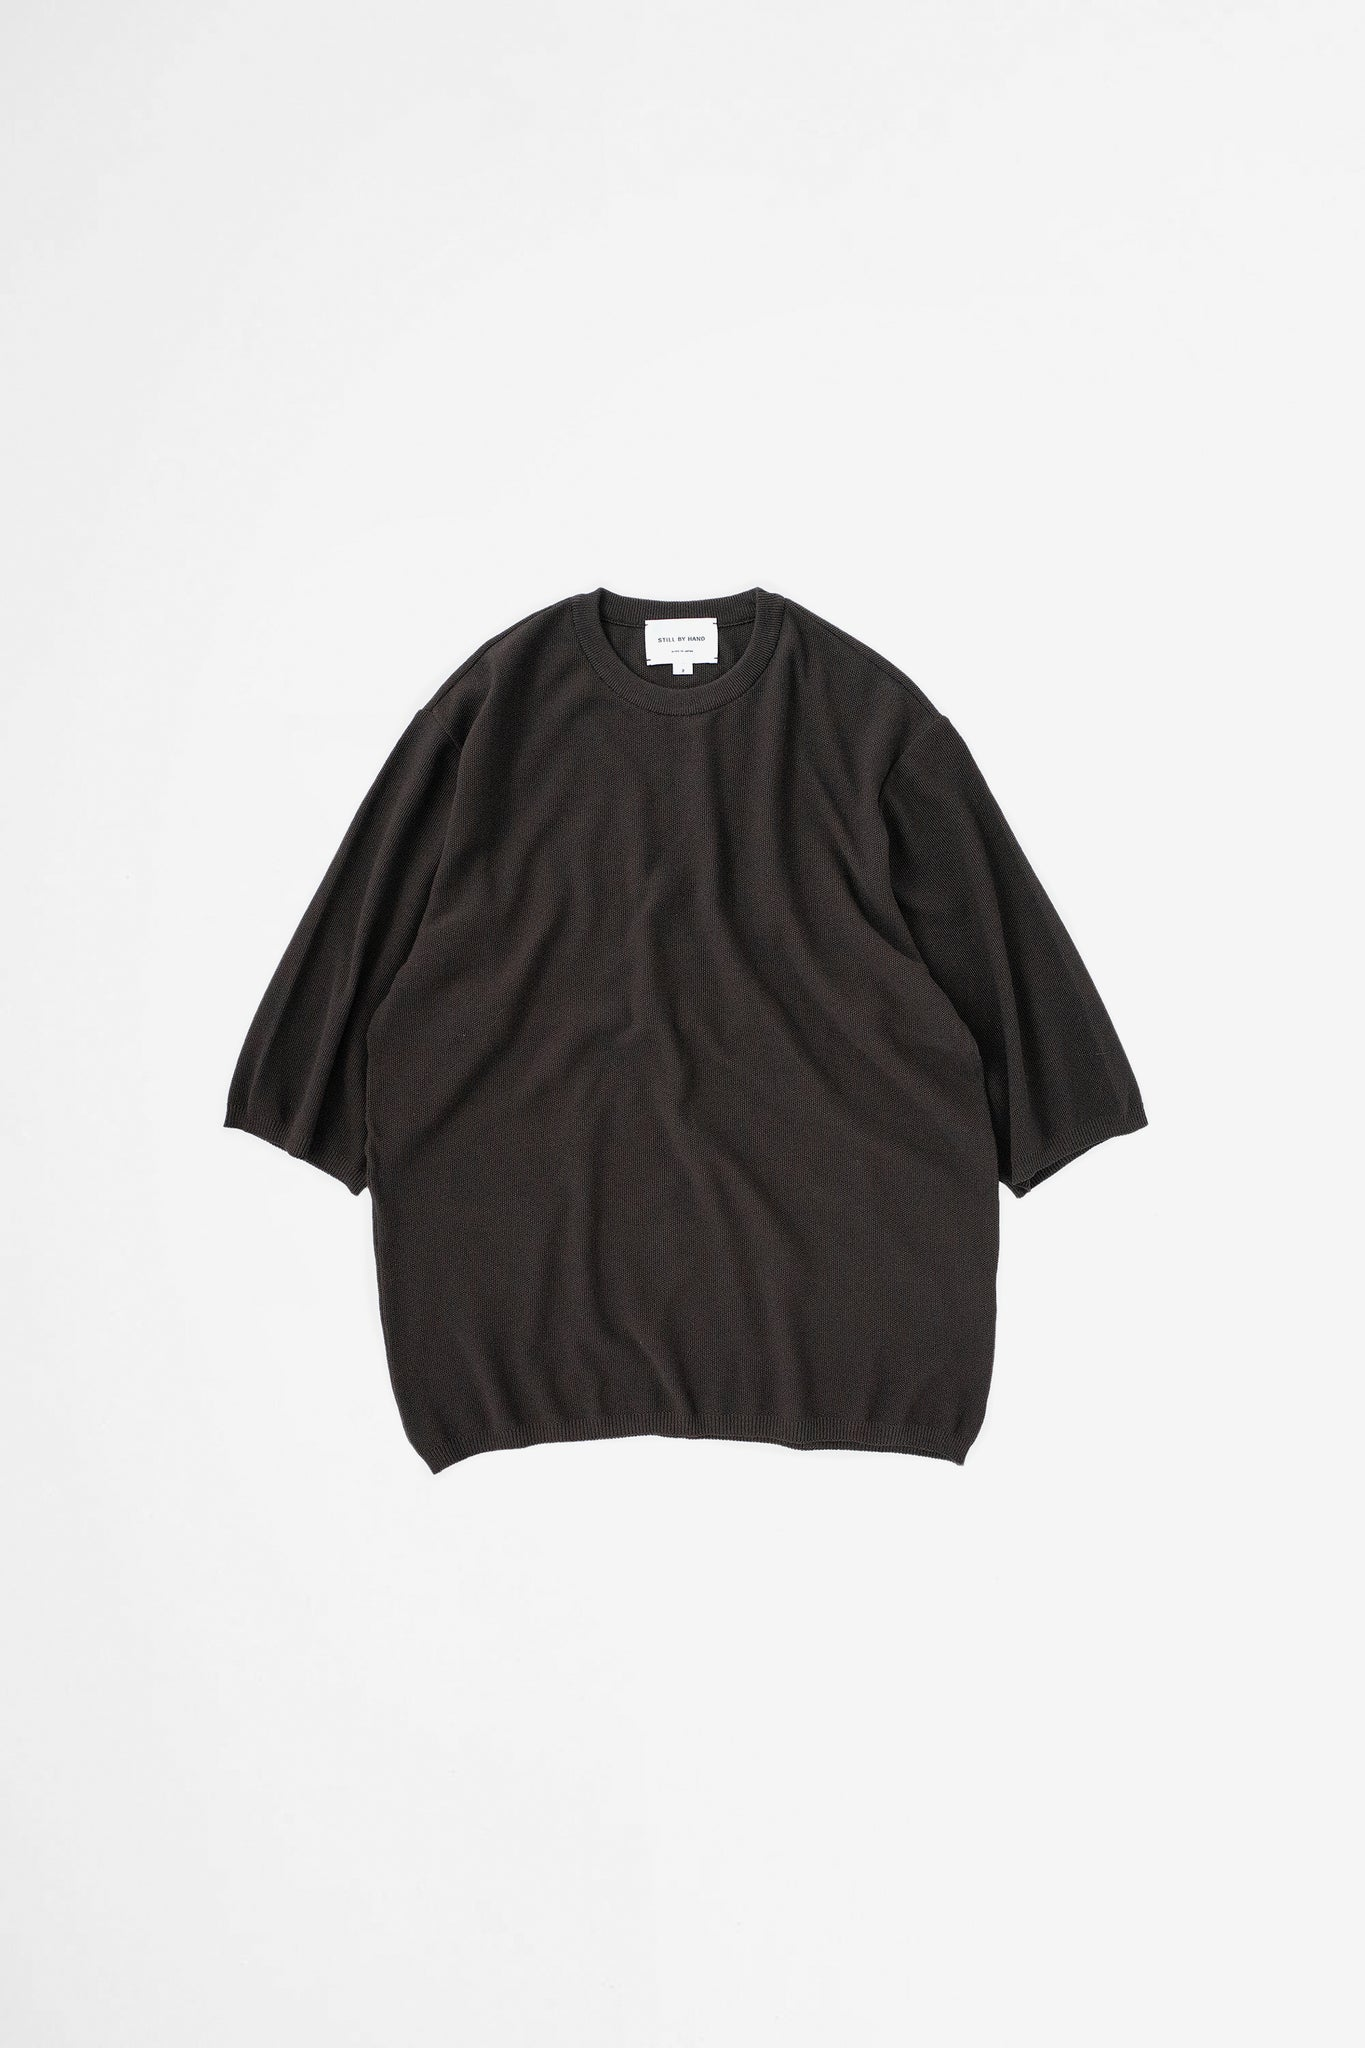 Half sleeve knit t-shirt brown